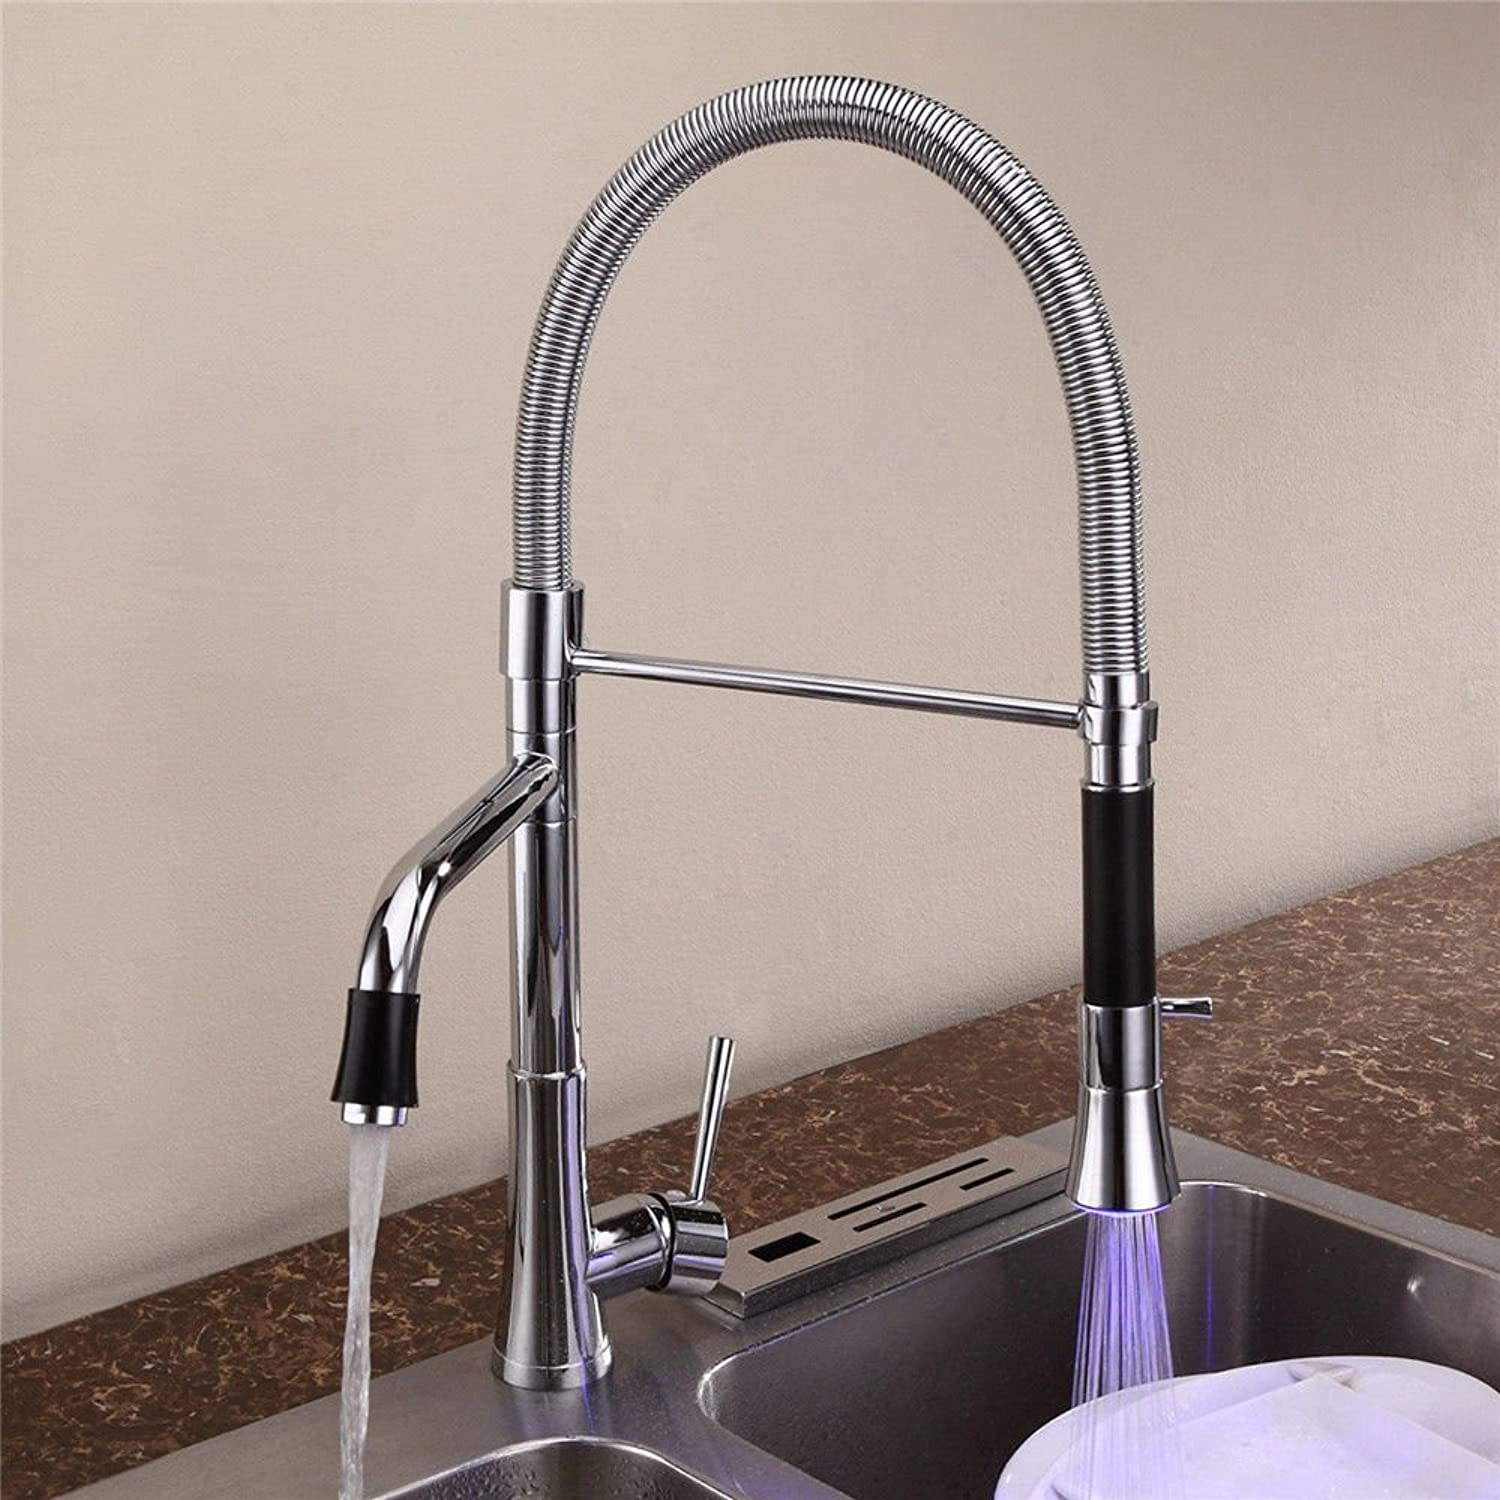 Lpophy Bathroom Sink Mixer Taps Faucet Bath Waterfall Cold and Hot Water Tap for Washroom Bathroom and Kitchen Copper Chrome-Plated Led Hot and Cold Single Hole Spring